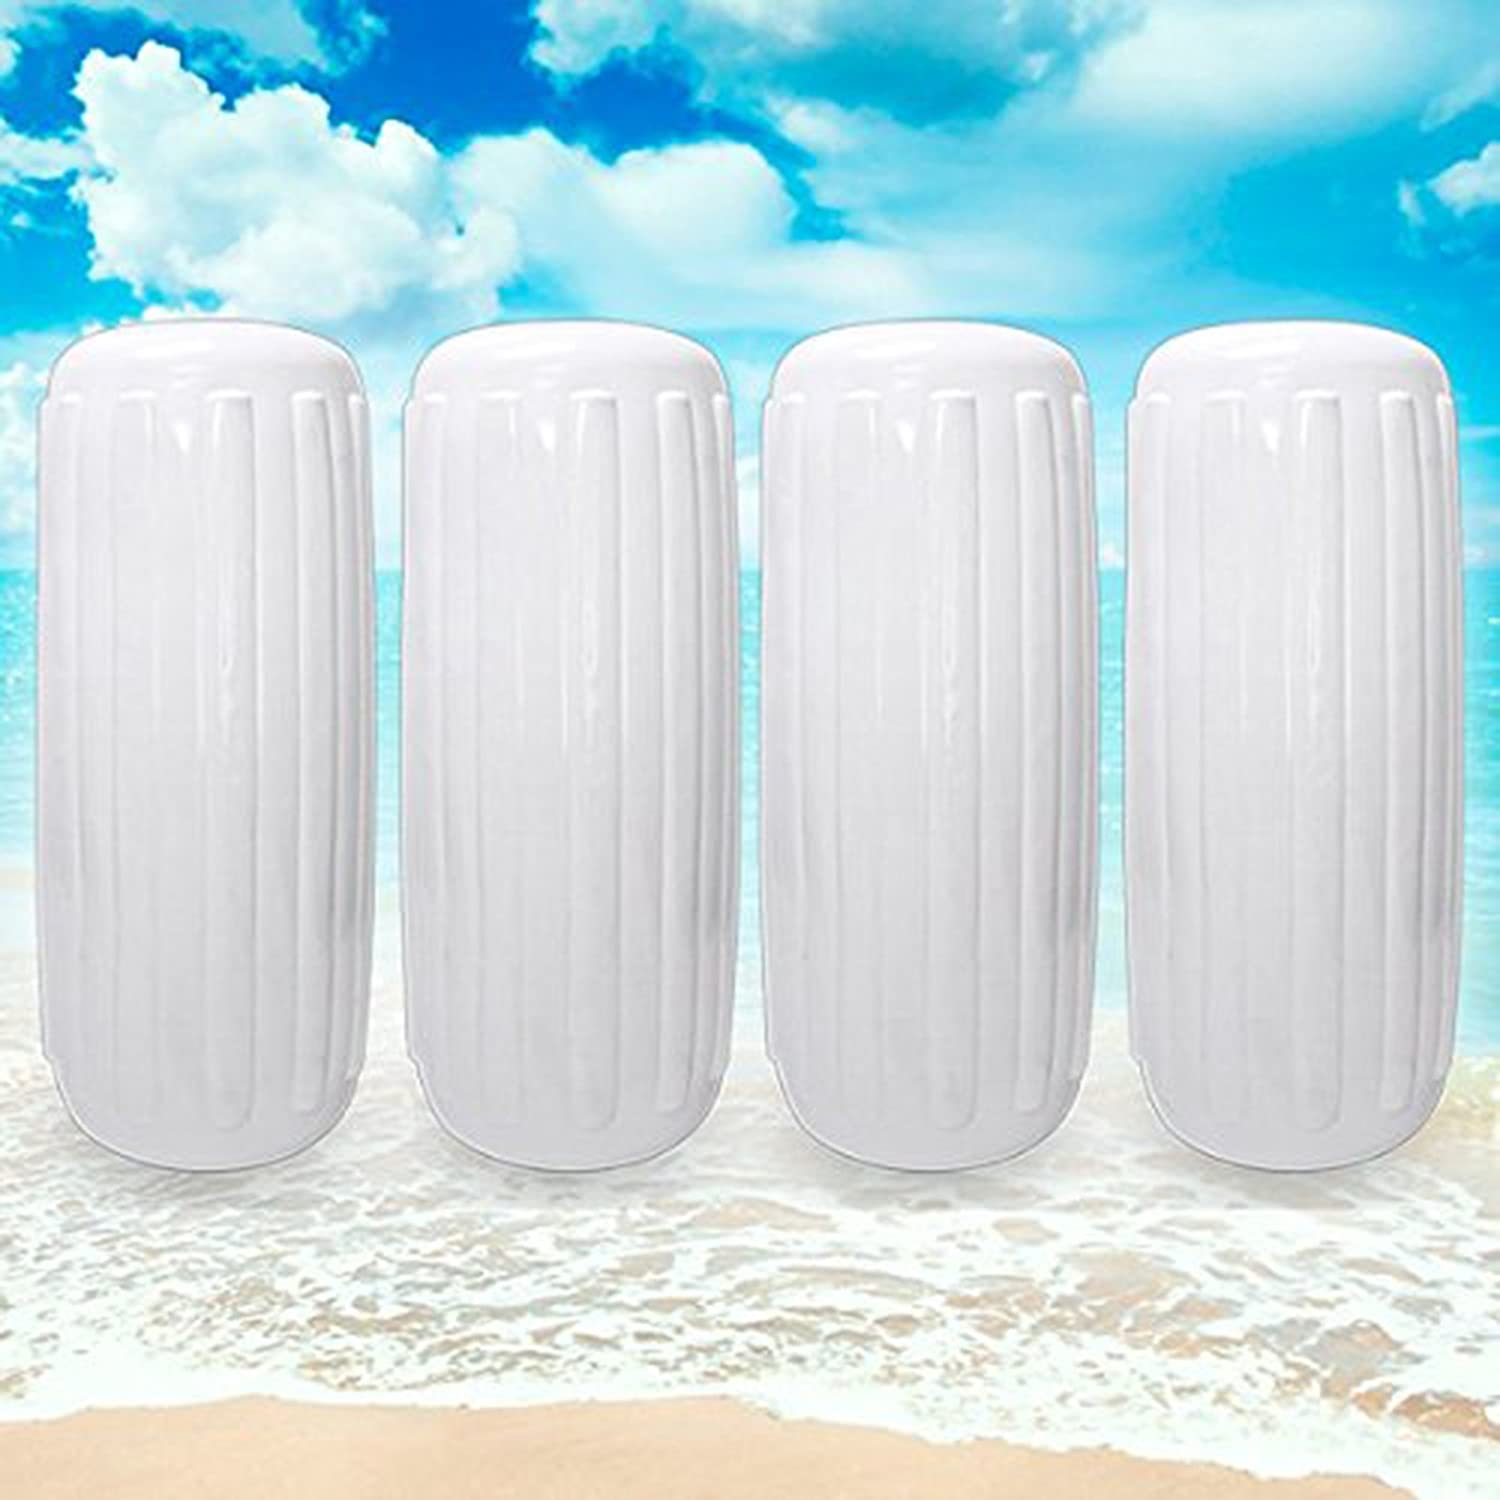 North East Harbor NEH Center Hole Ribbed Boat Pontoon Fender 10 x 28 4pcs Inflatable Vinyl Mooring Bumpers Guard Dock Docking White